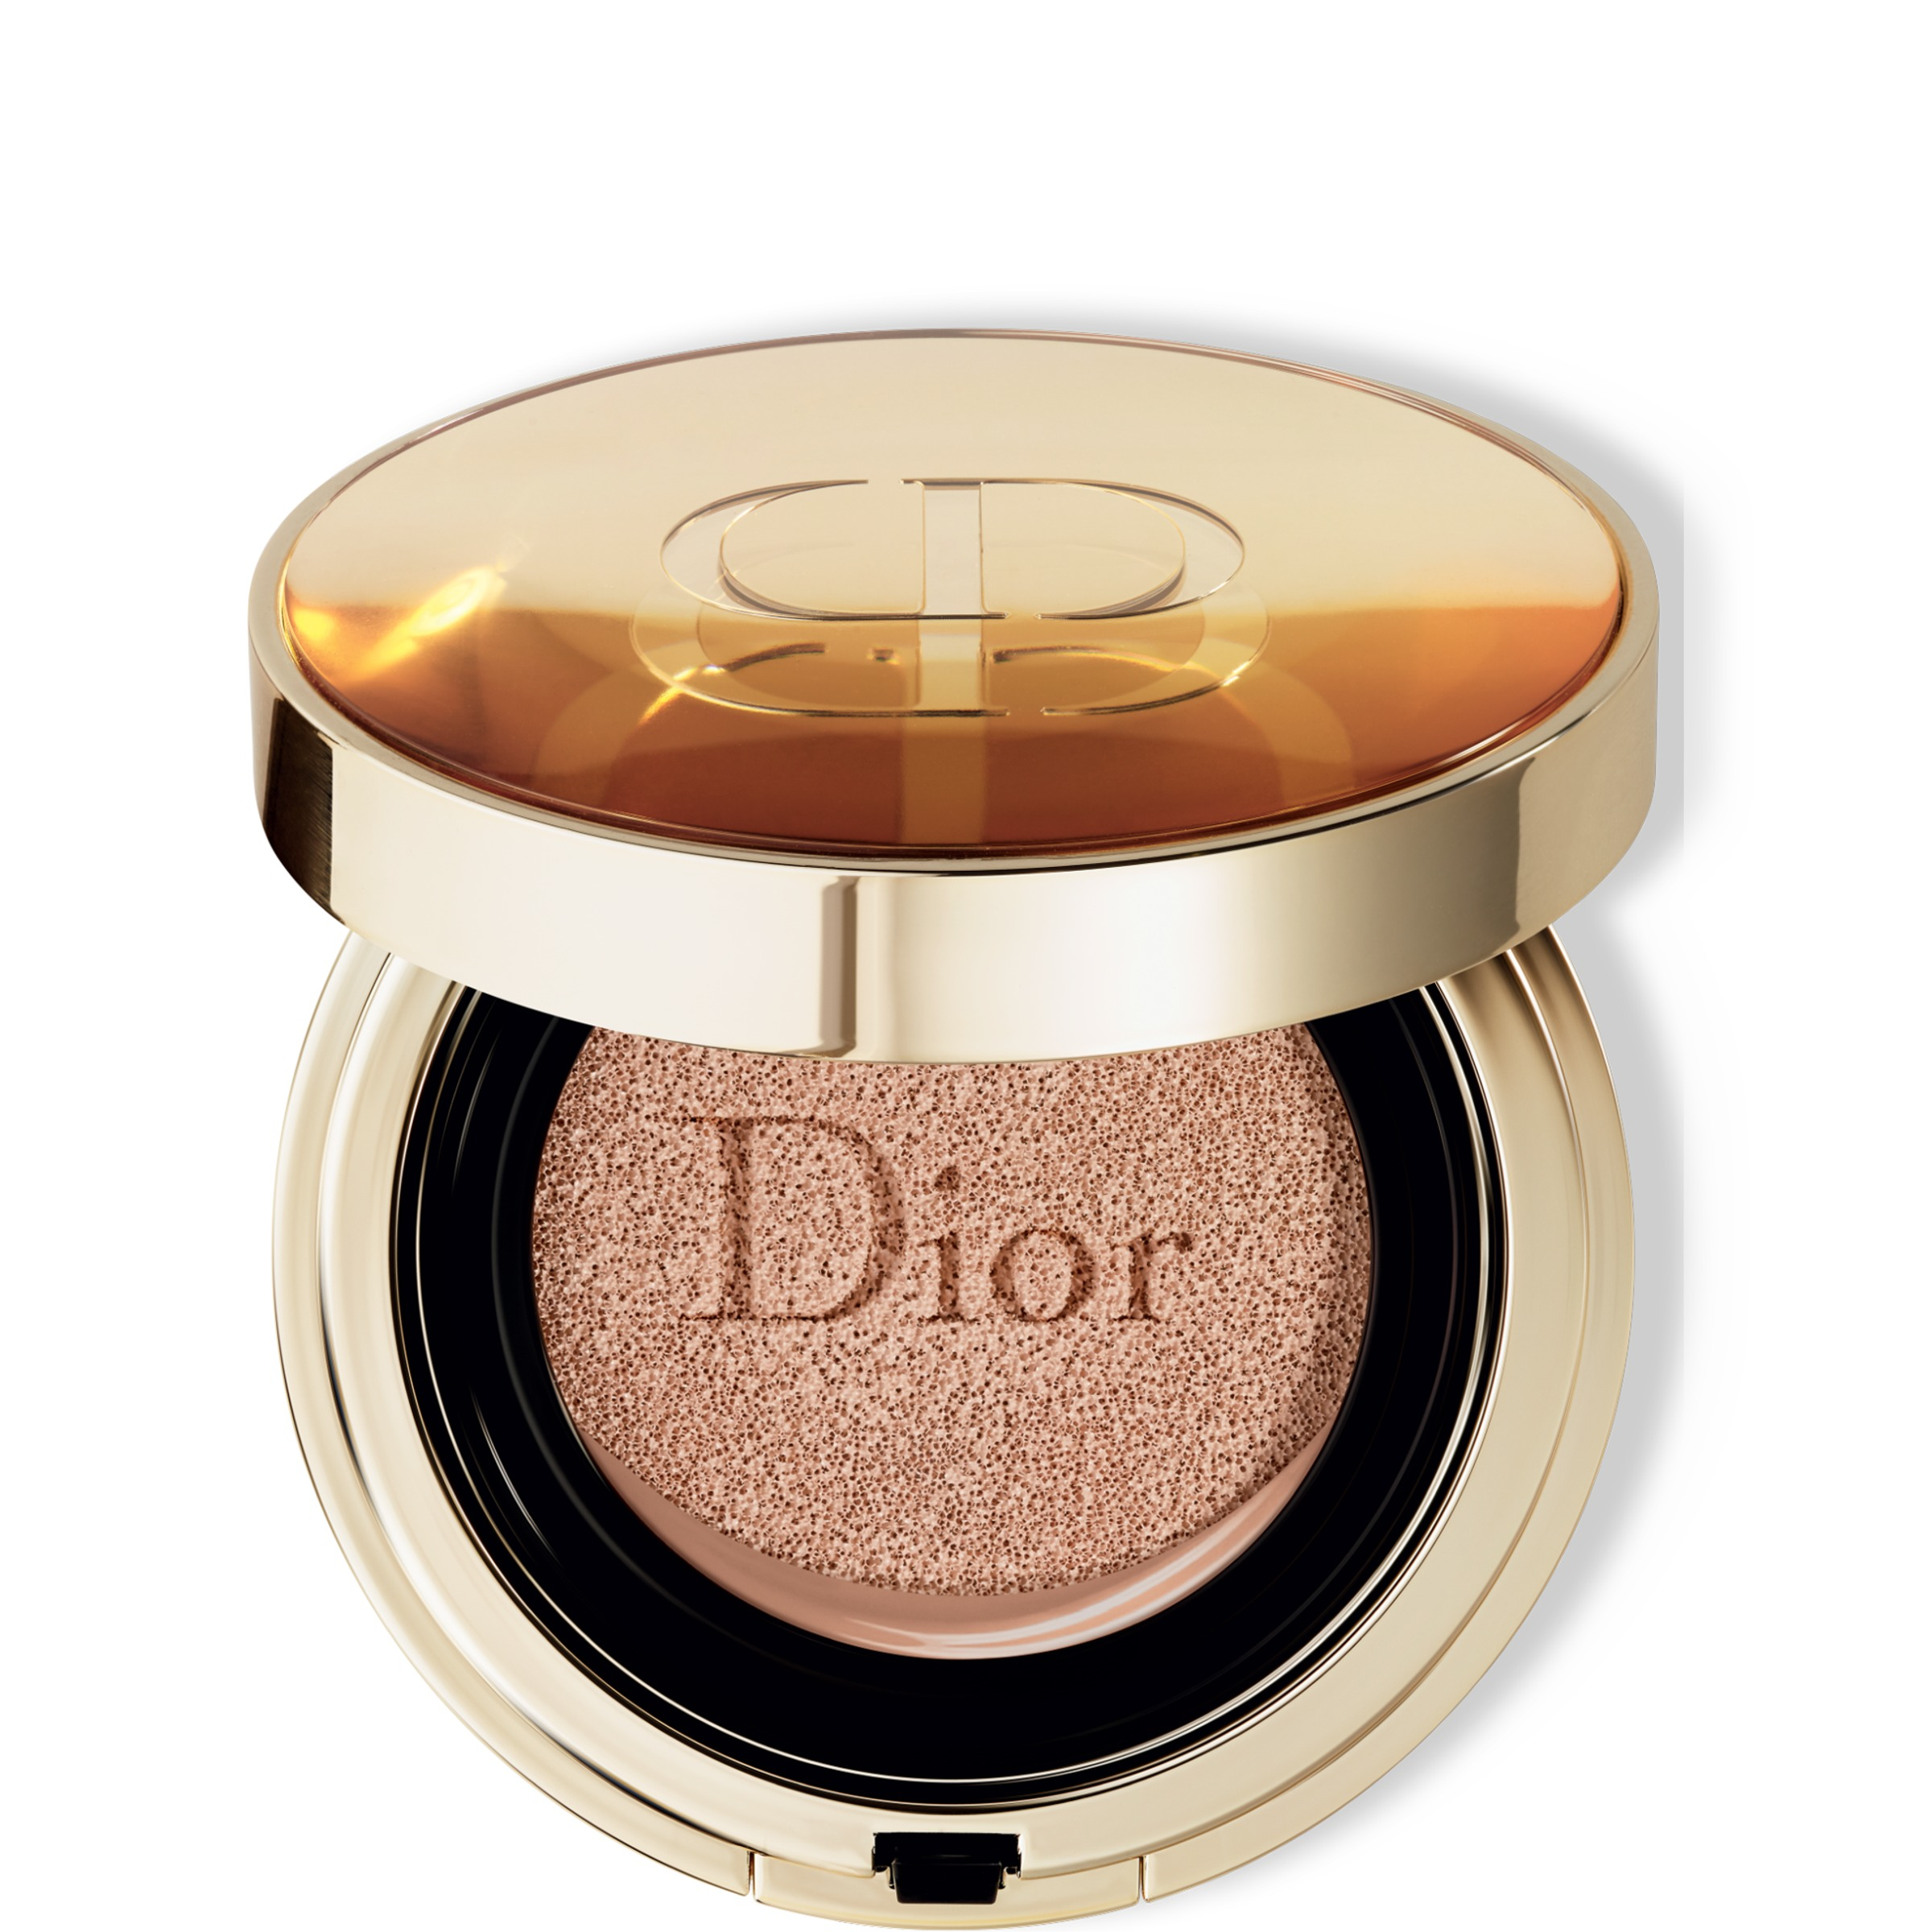 Prestige Le Cushion Teint de Rose Foundation 20